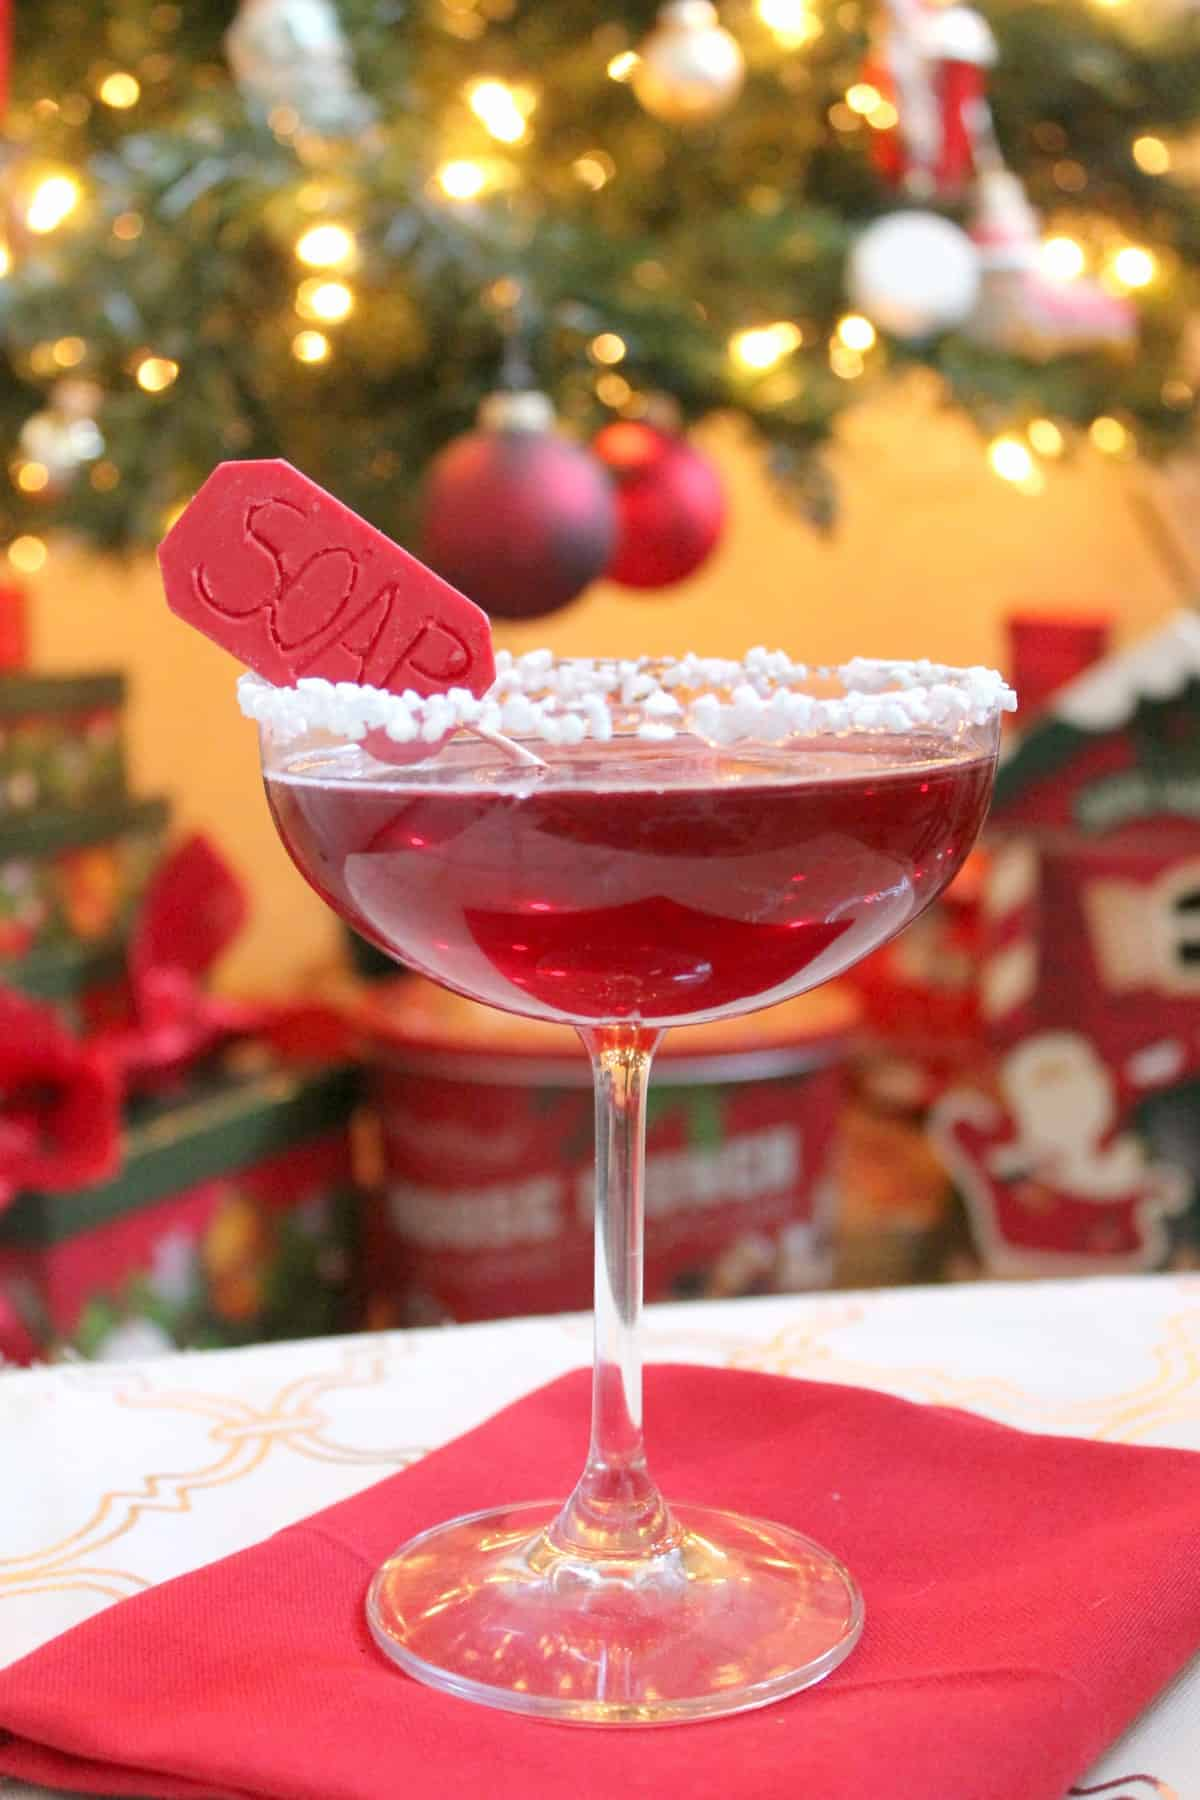 """Oh Fudge!"" Inspired by the Christmas favorite, A Christmas Story, The Lifebuoy Cocktail is anything but a punishment for your taste buds! Flavors of muddled raspberries and vanilla bean simple syrup make this bourbon cocktail a great holiday beverage. No profanity required!"